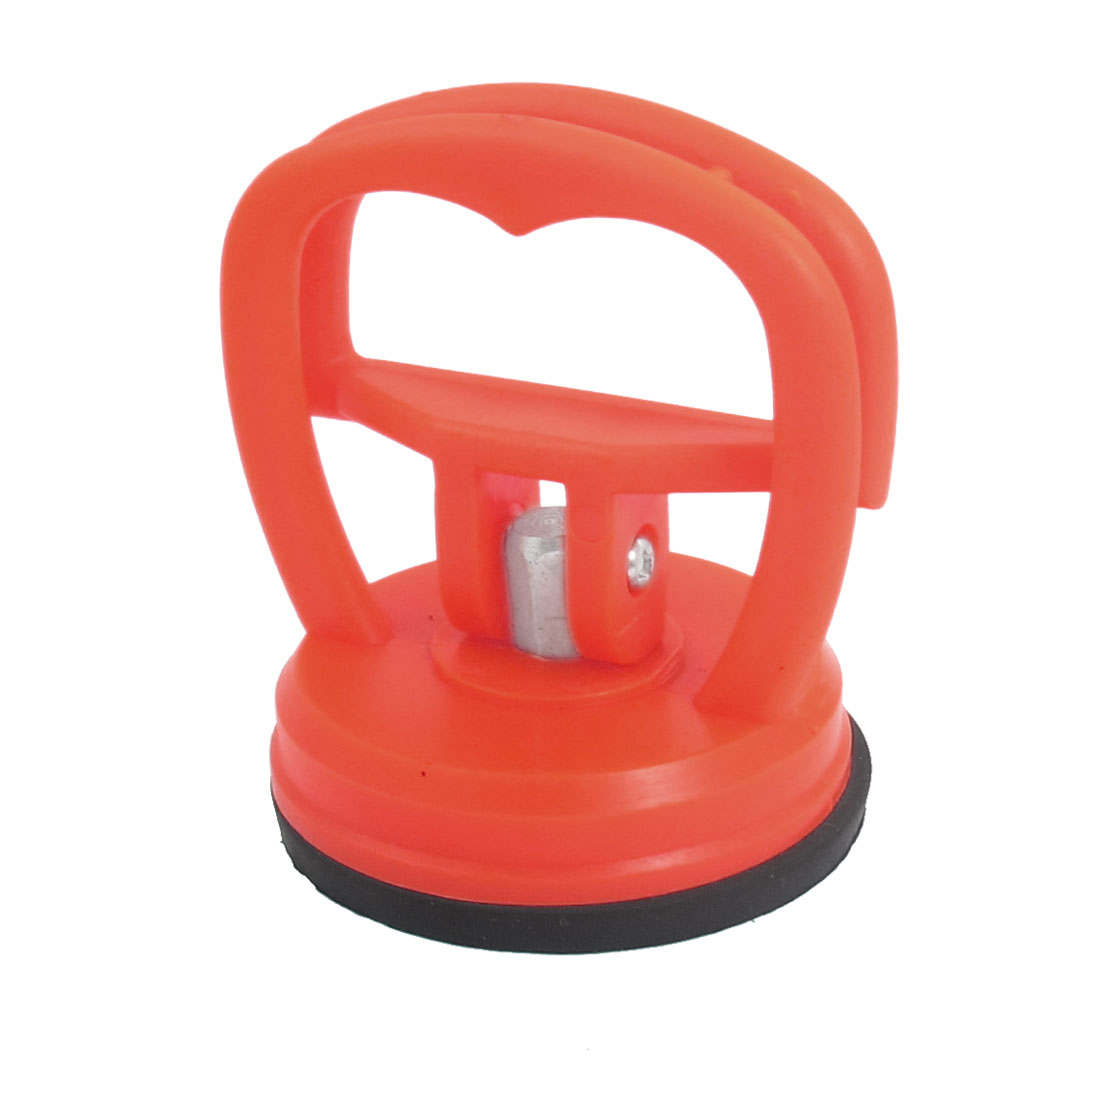 "New Orange Red Plastic Handle 2.2"" Diameter Glass Suction Cup Plate"